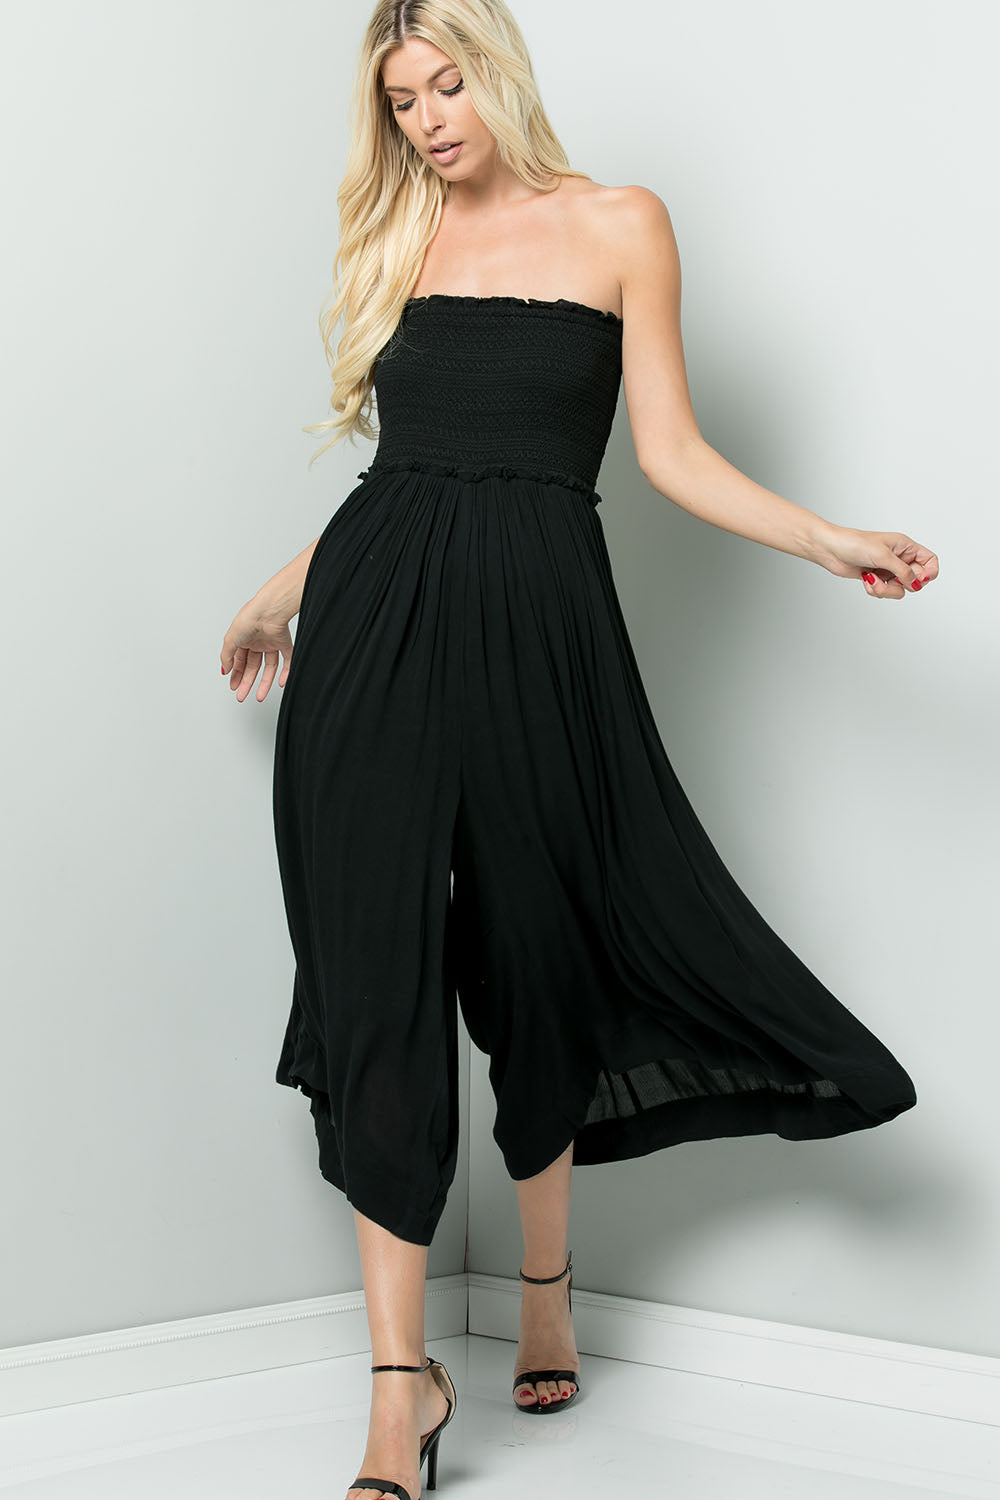 Smock Tube top Jumpsuit - Black